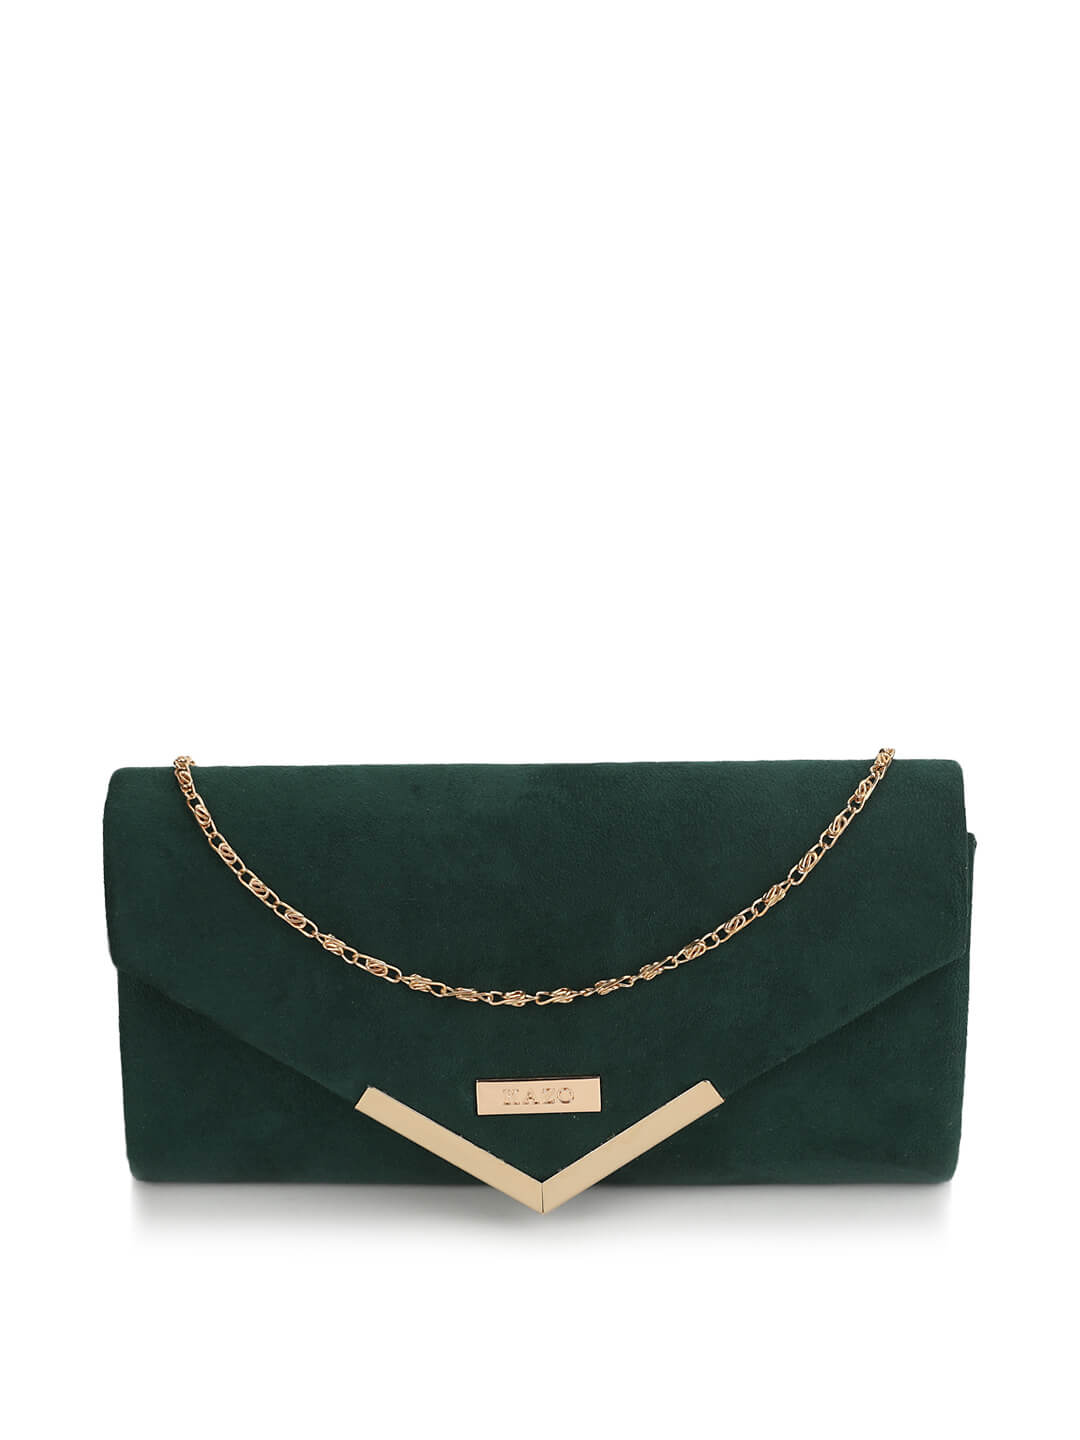 Megan Cutch Bag